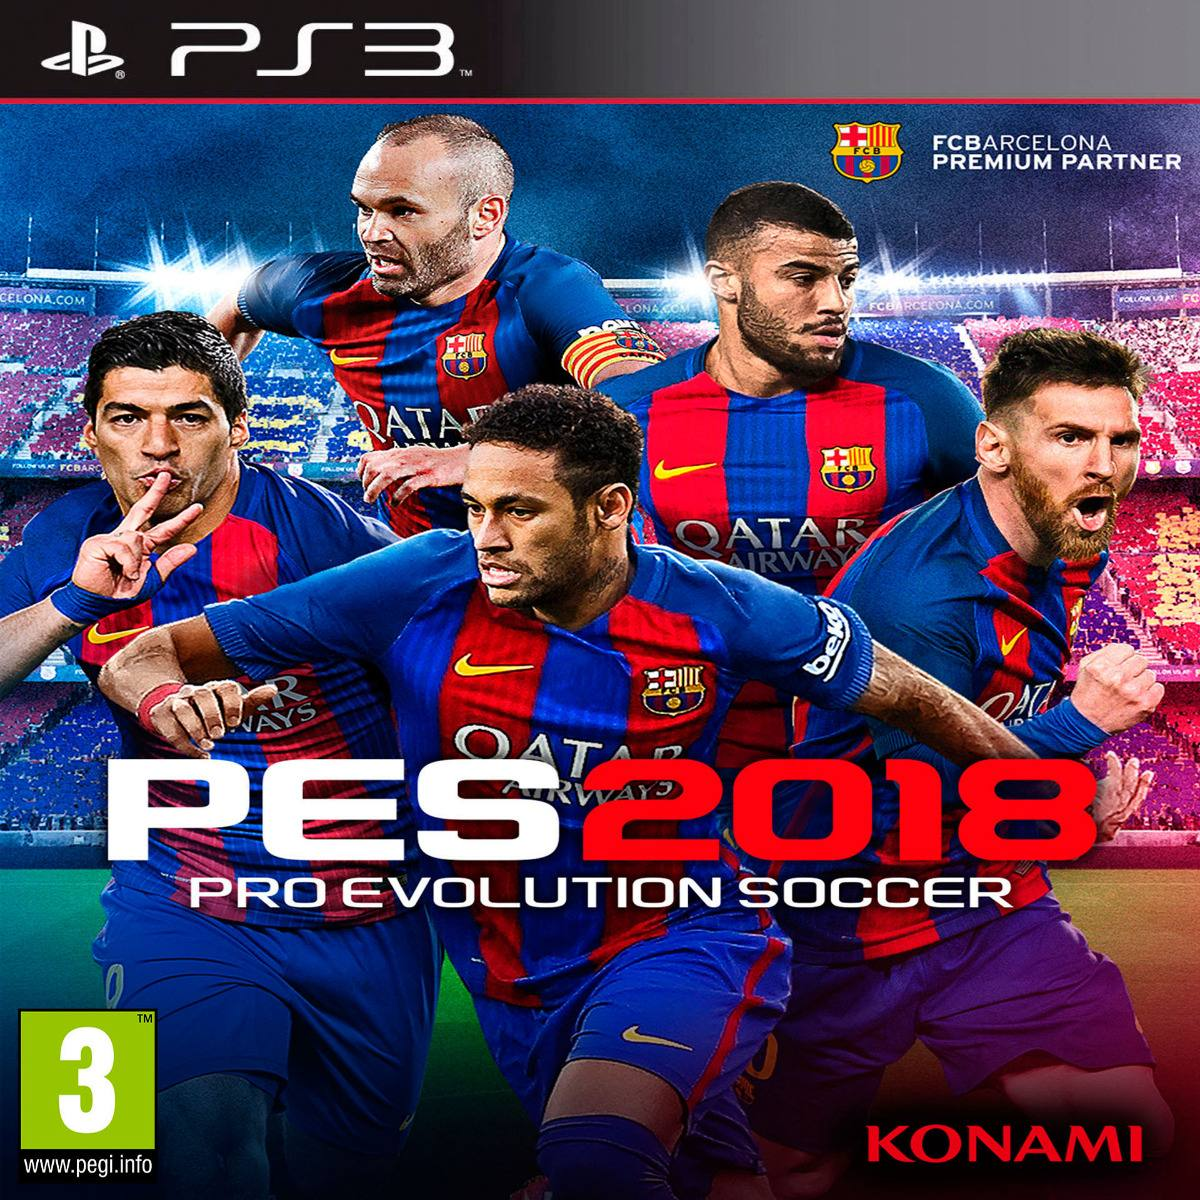 Oni Games - Pro Evolution Soccer 2018 (pes 2018) Ps3 - $ 2 450,00